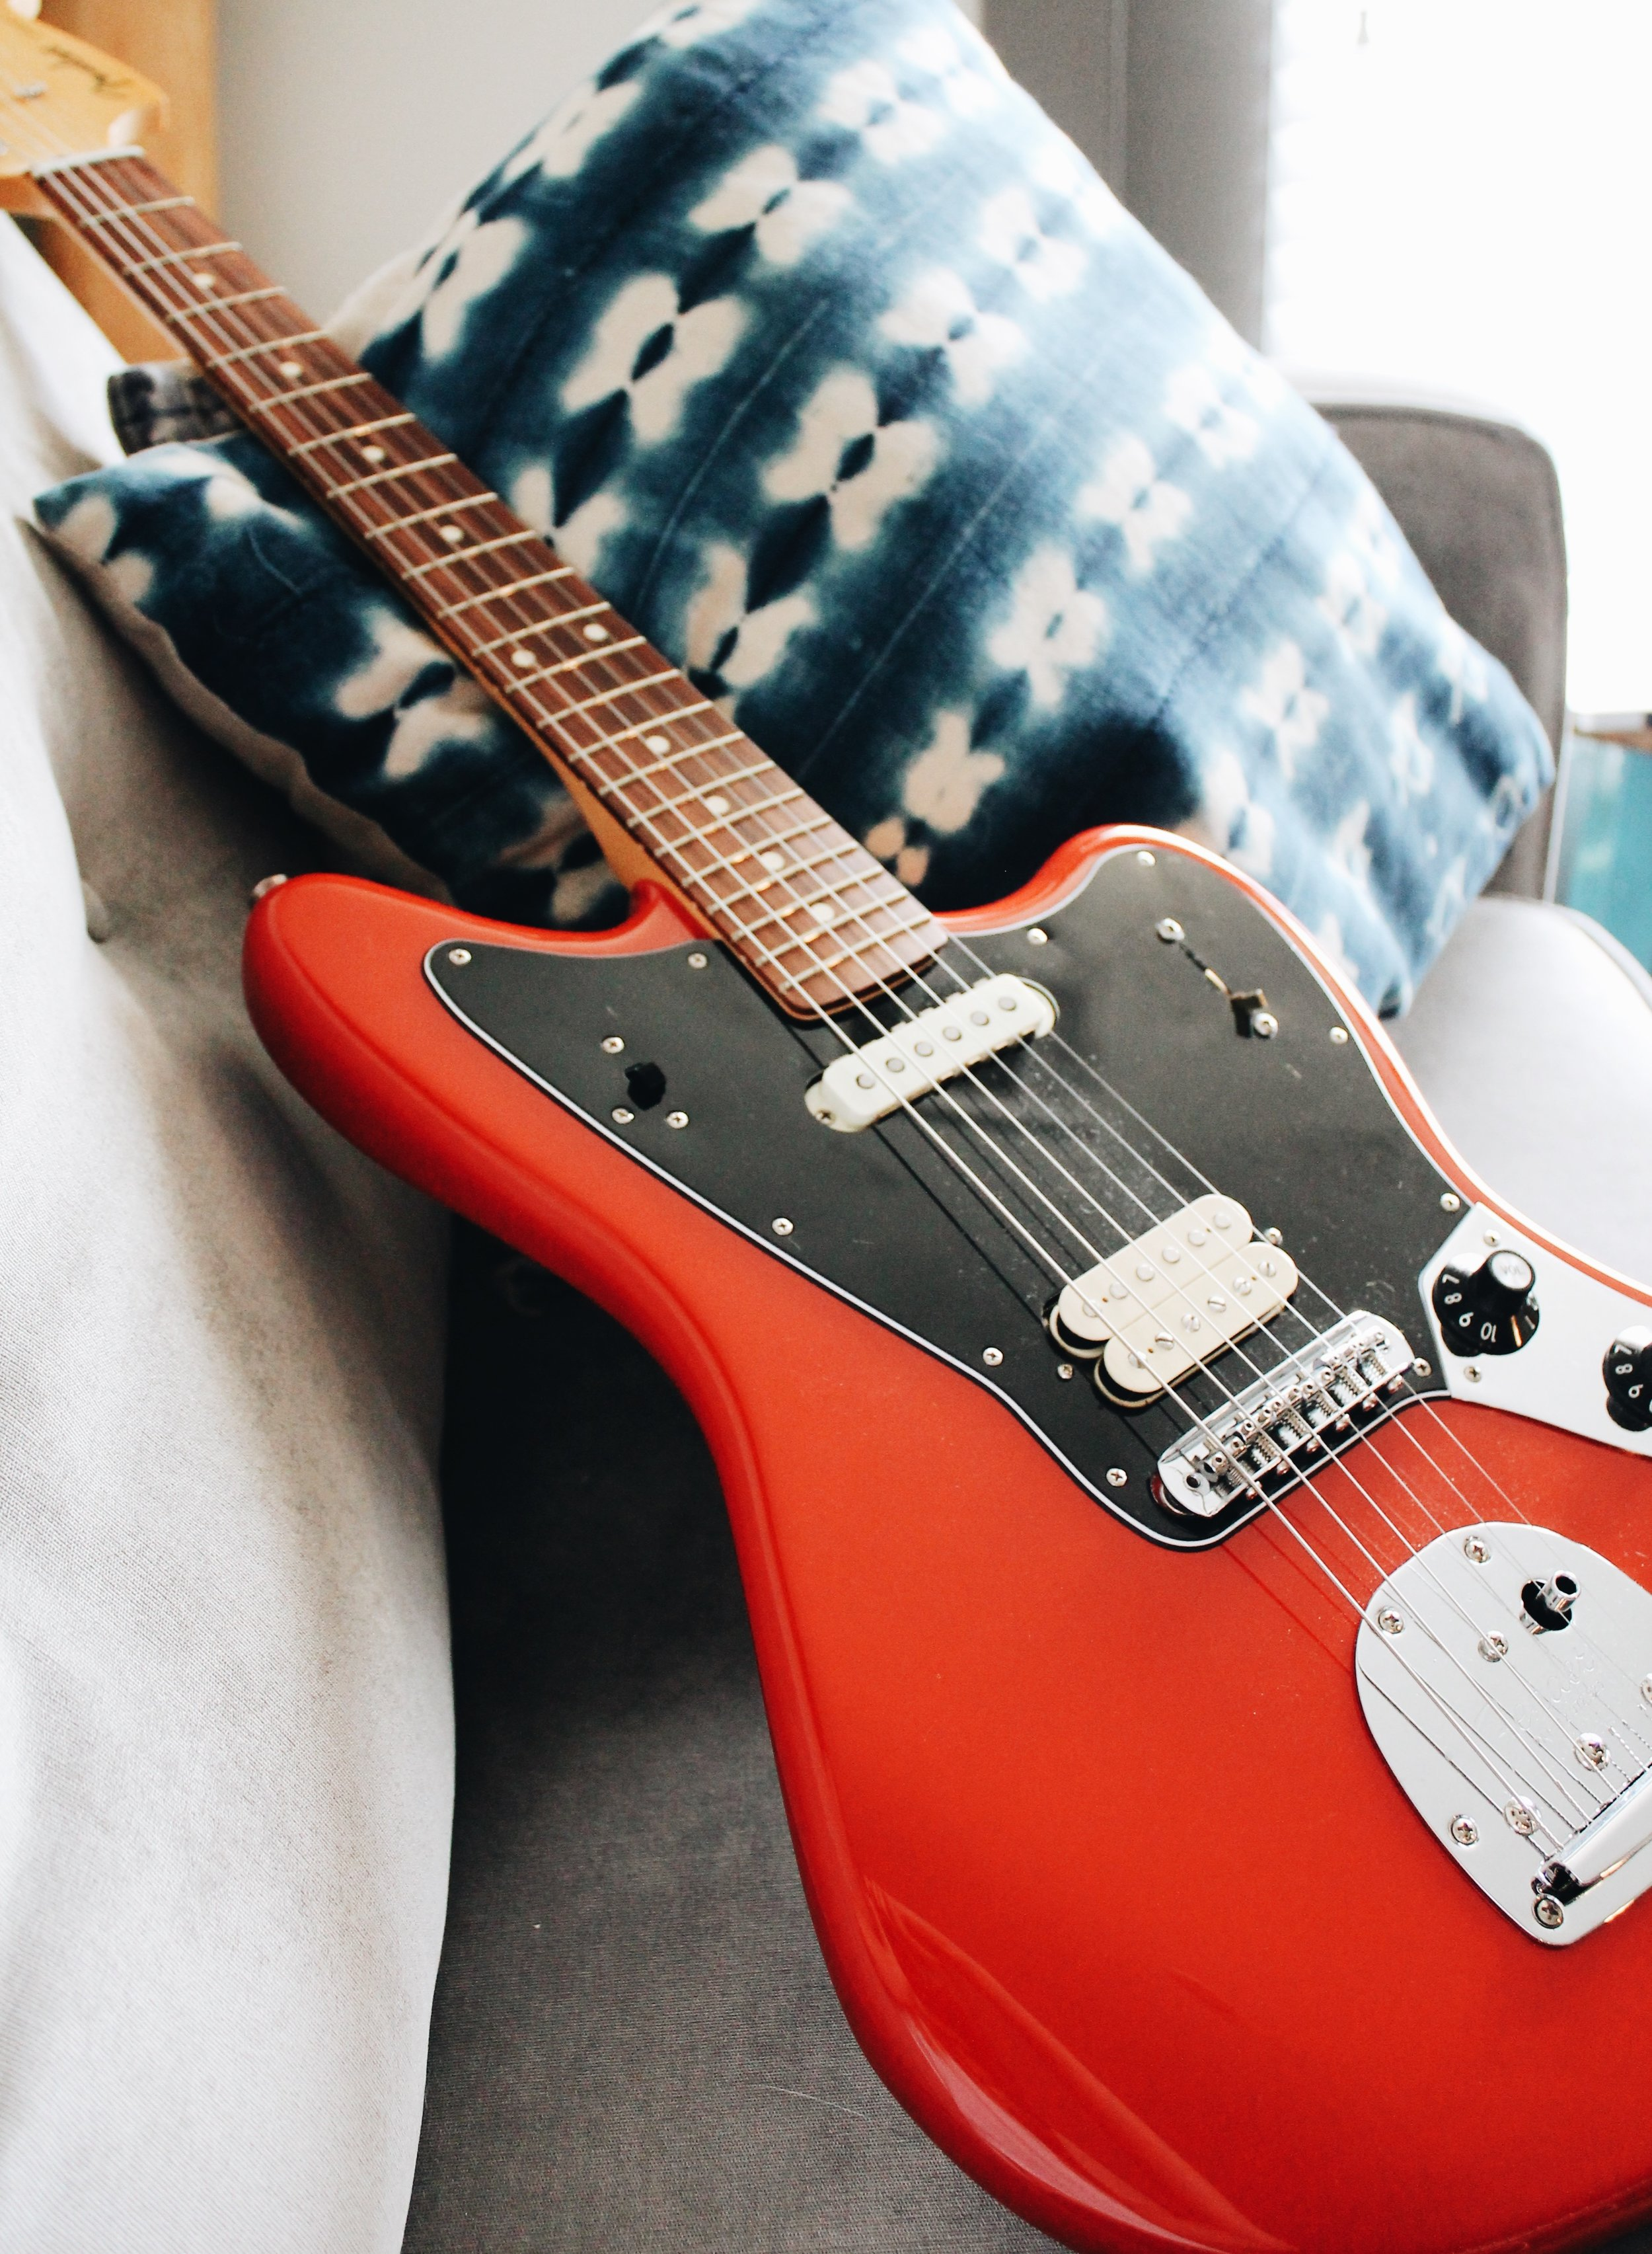 The  Fender Player Series  have become my go to guitar recommendation for students starting out on Electric. They sounds great and are a great deal!